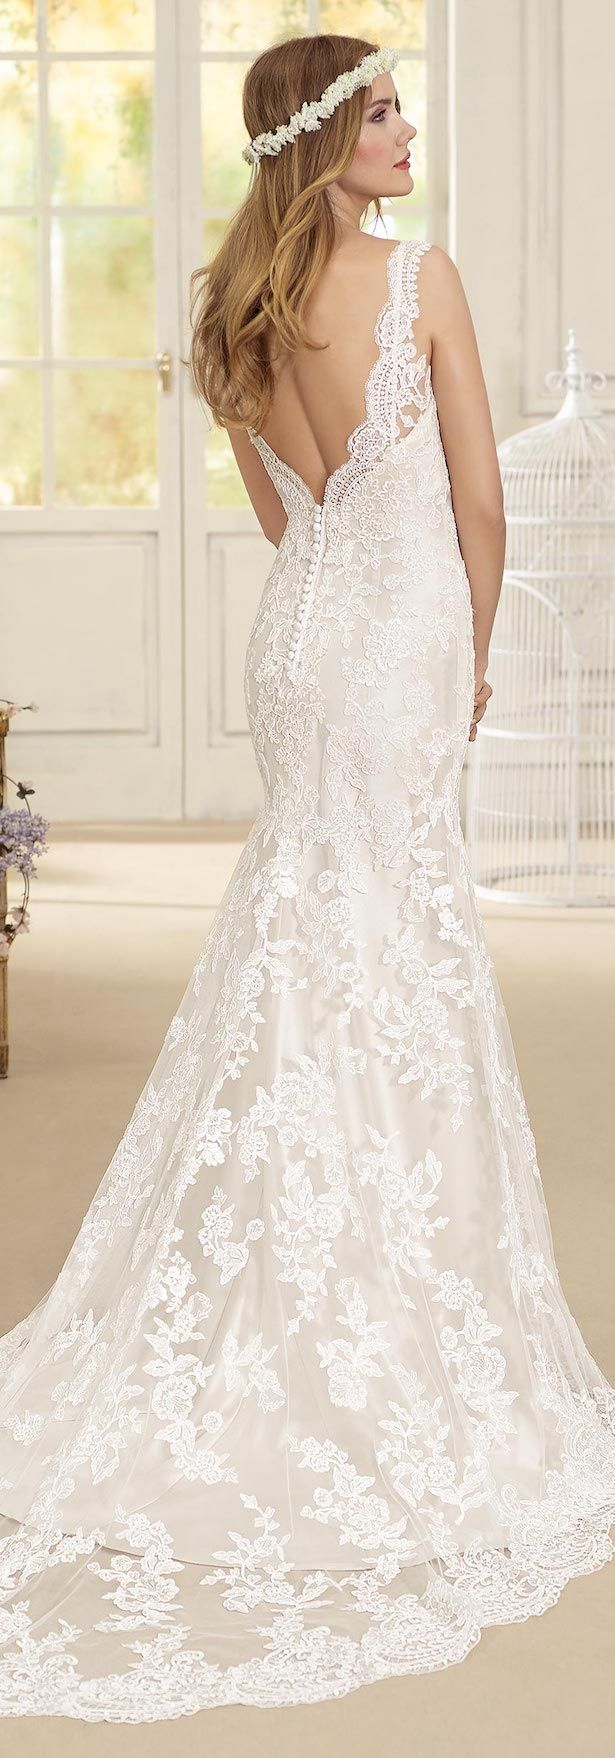 Wedding Dresses by Fara Sposa 2017 Bridal Collection | Part 2